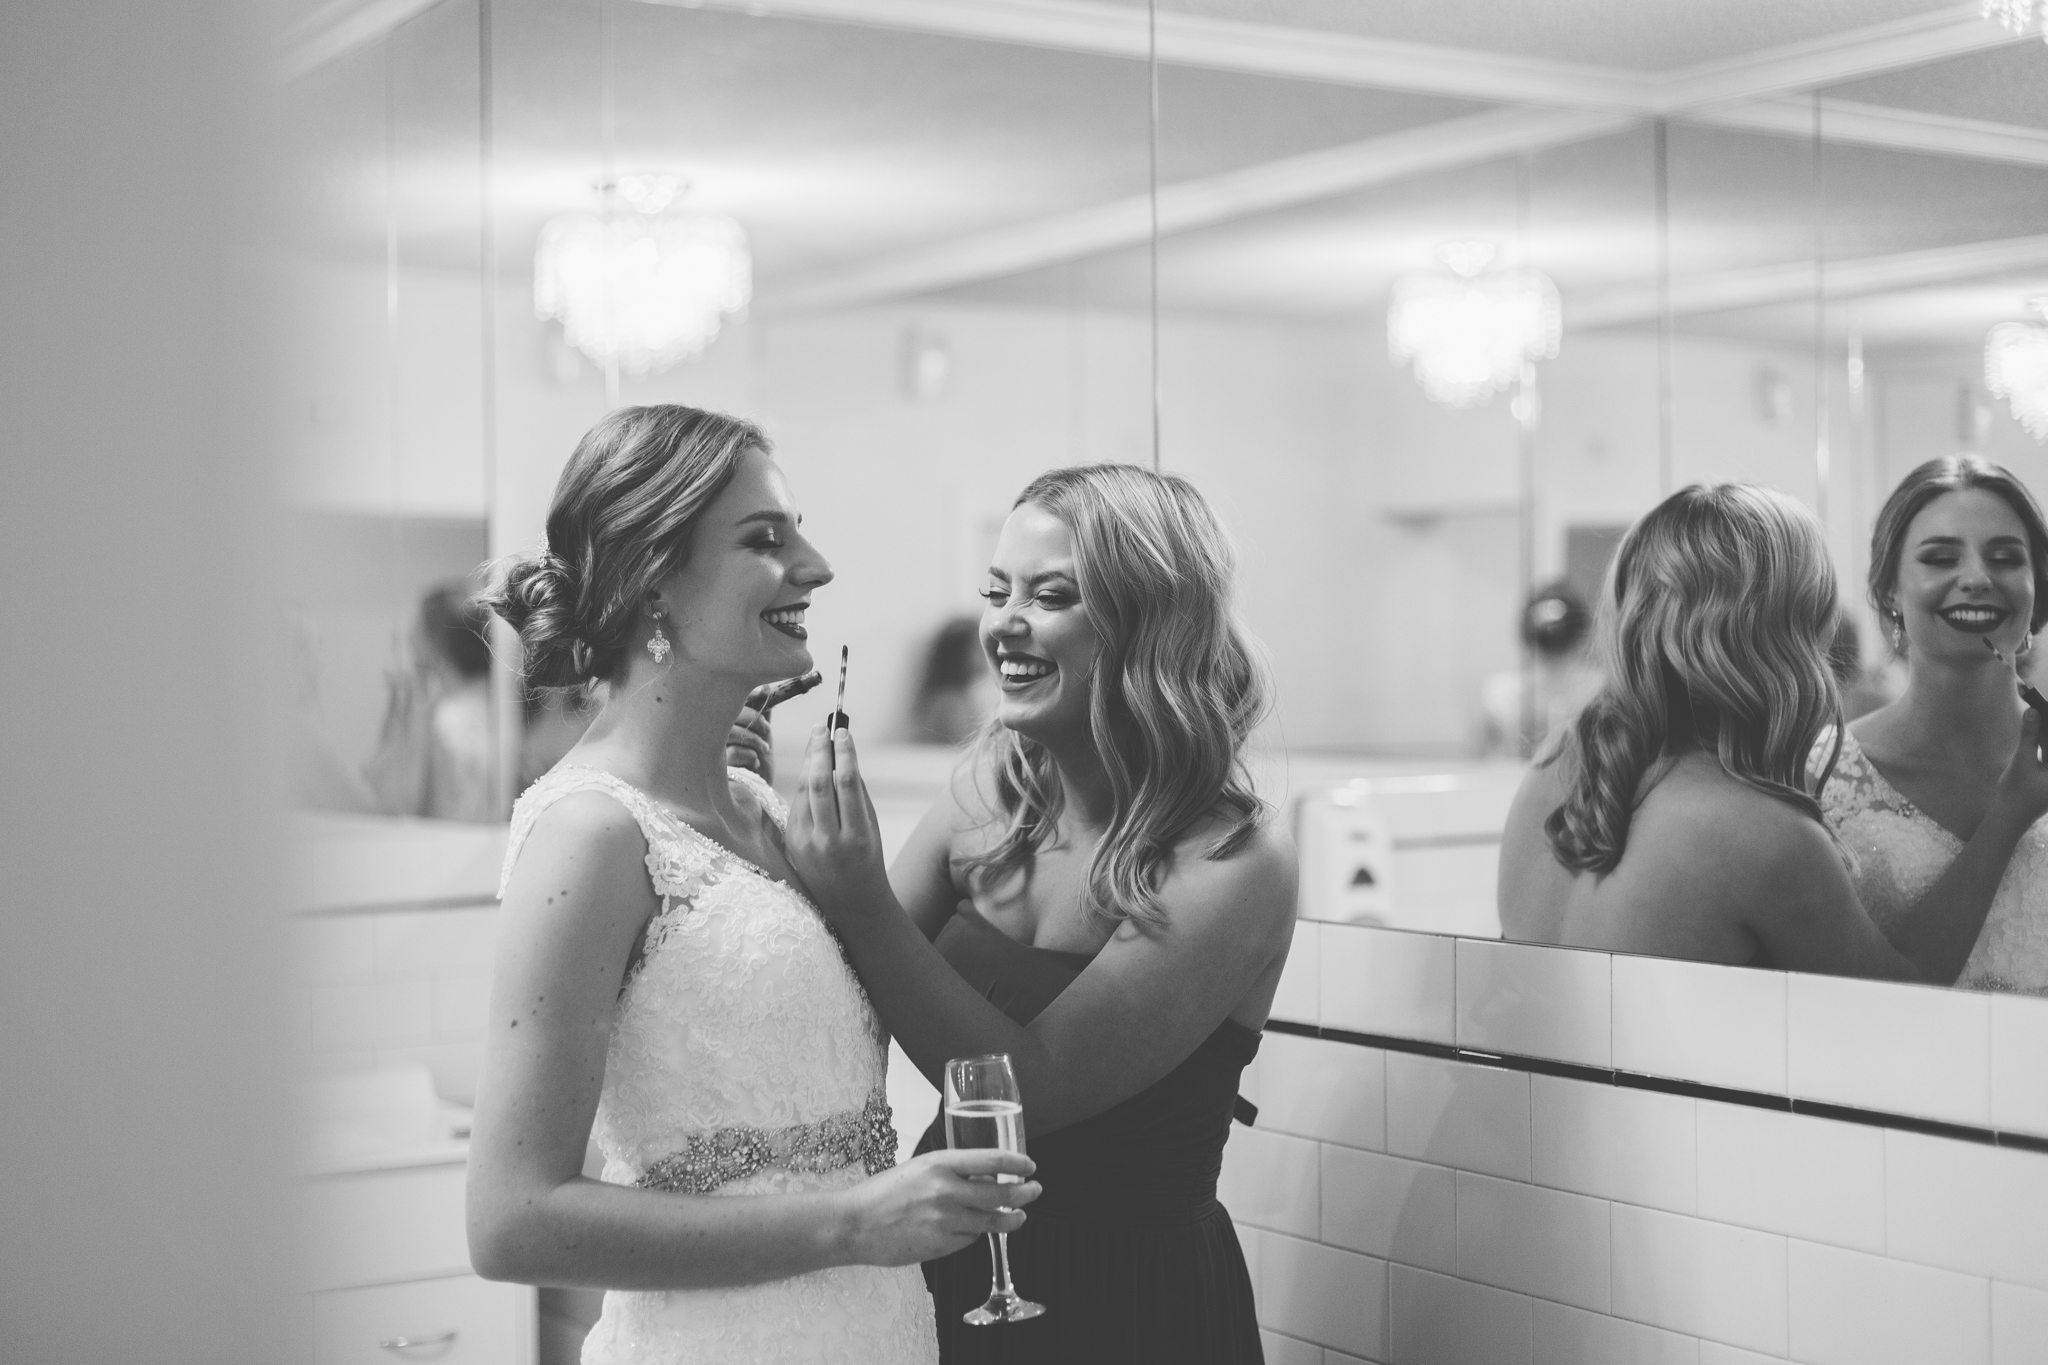 bride holding champagne wit friend putting lipstick for her surrounded by mirrors